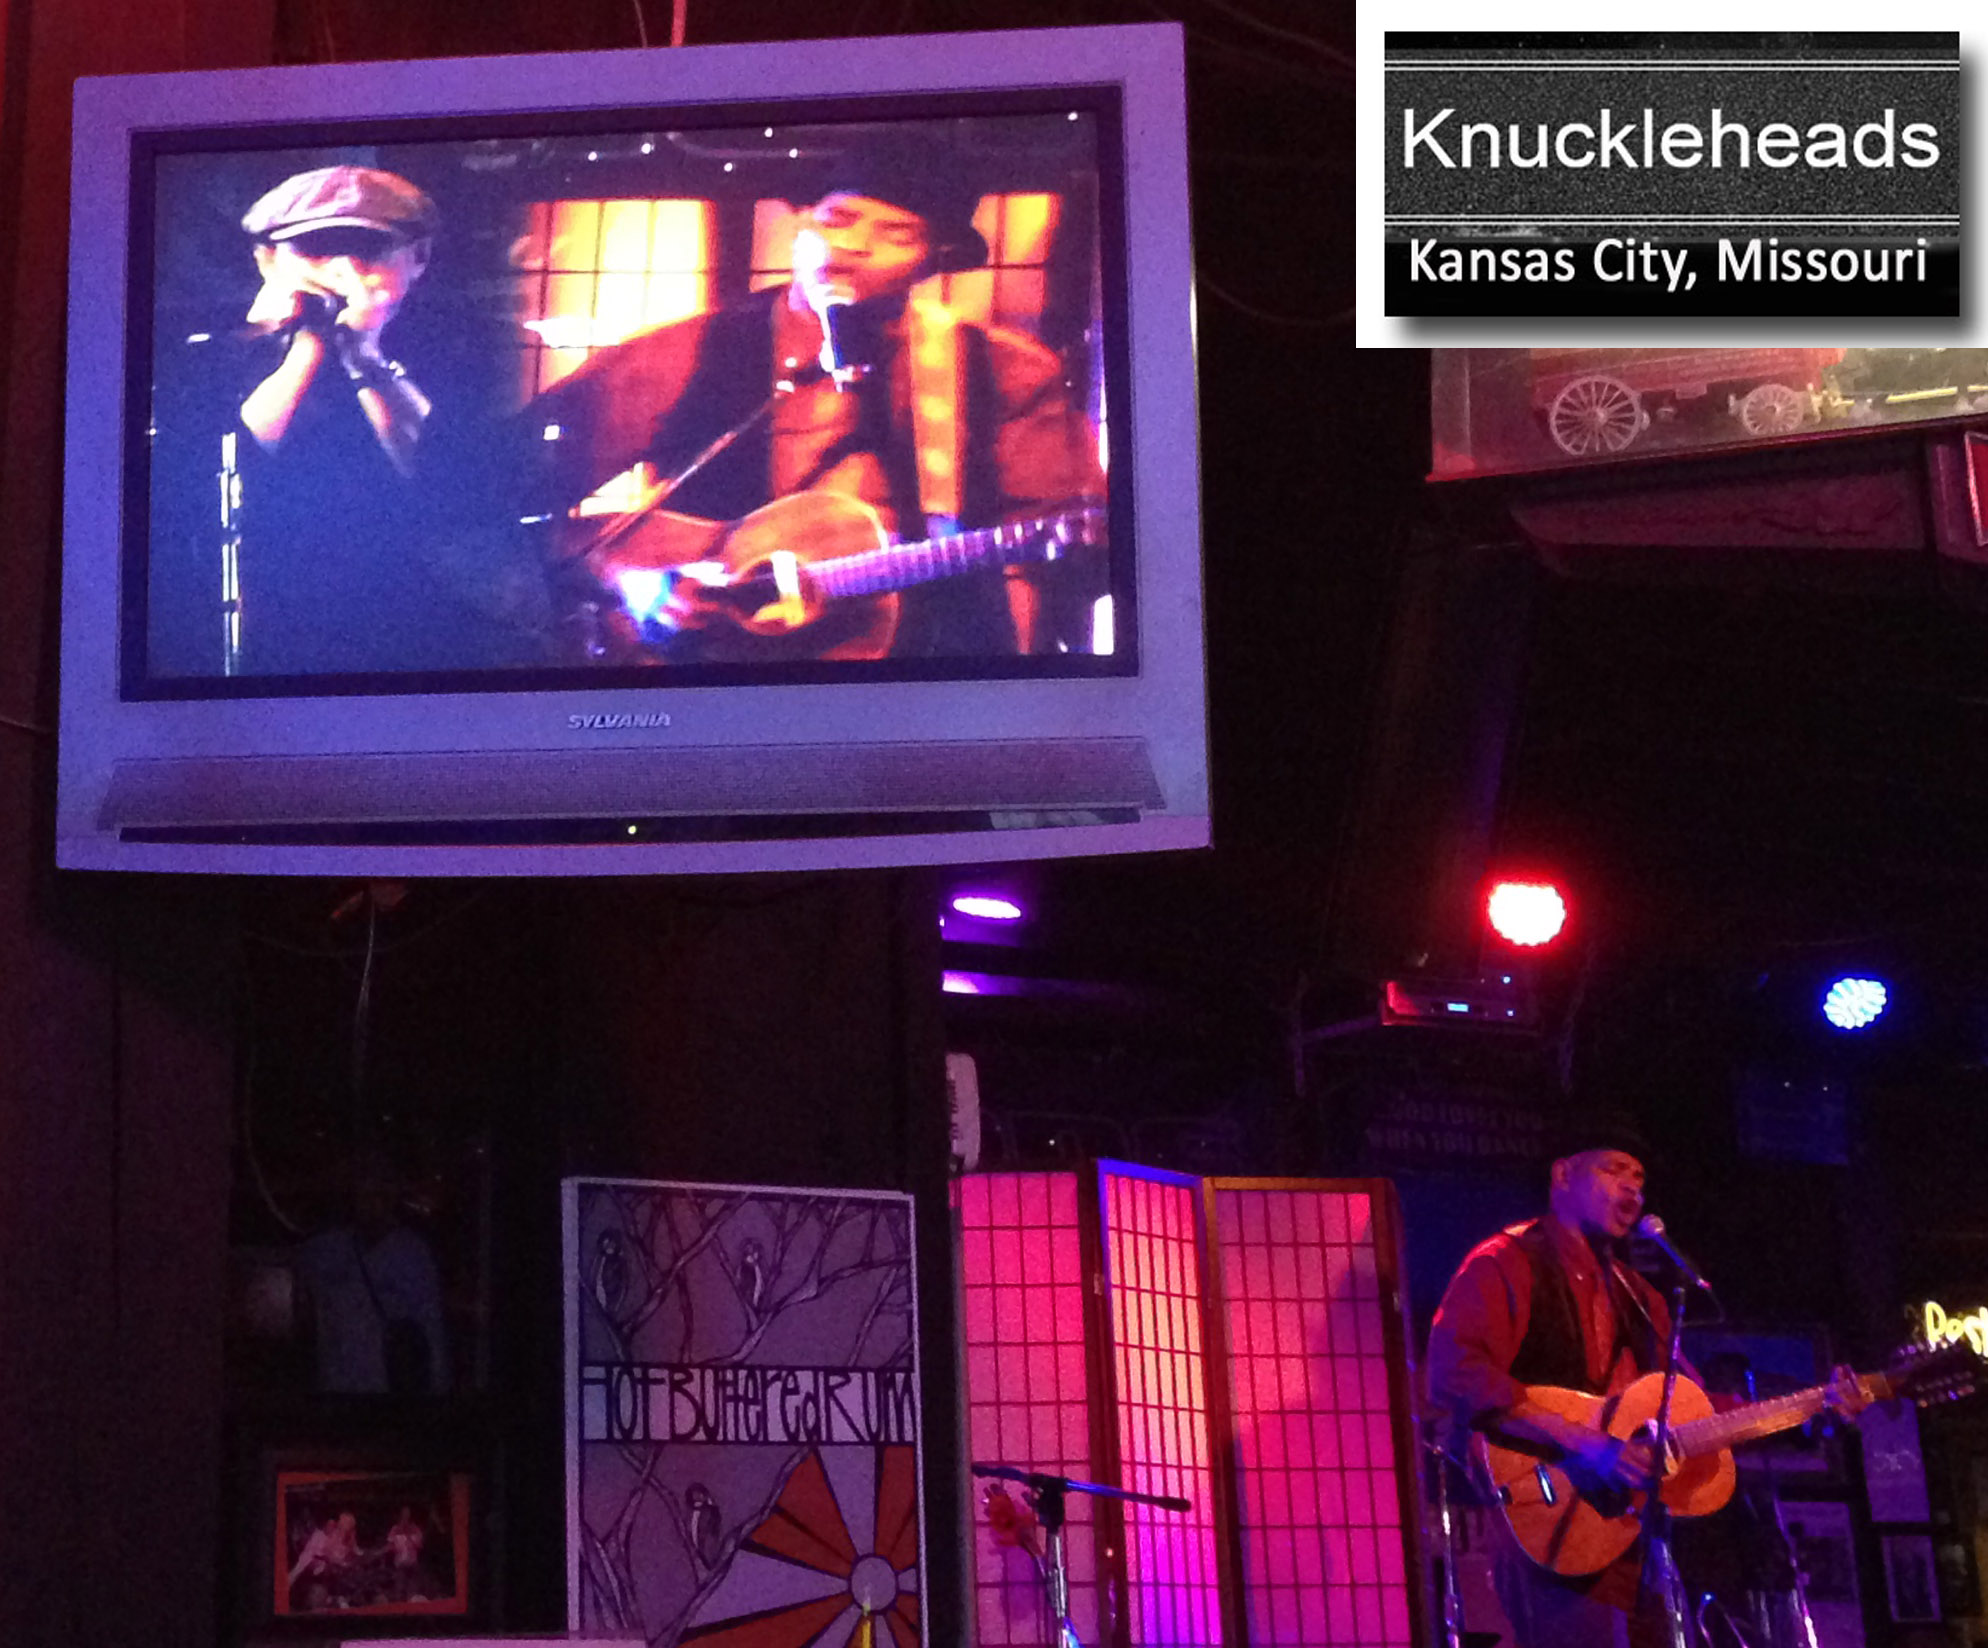 GUY DAVIS & FABRIZIO POGGI 2014 USA TOUR live at KNUCKLEHEADS Kansas City, Missouri